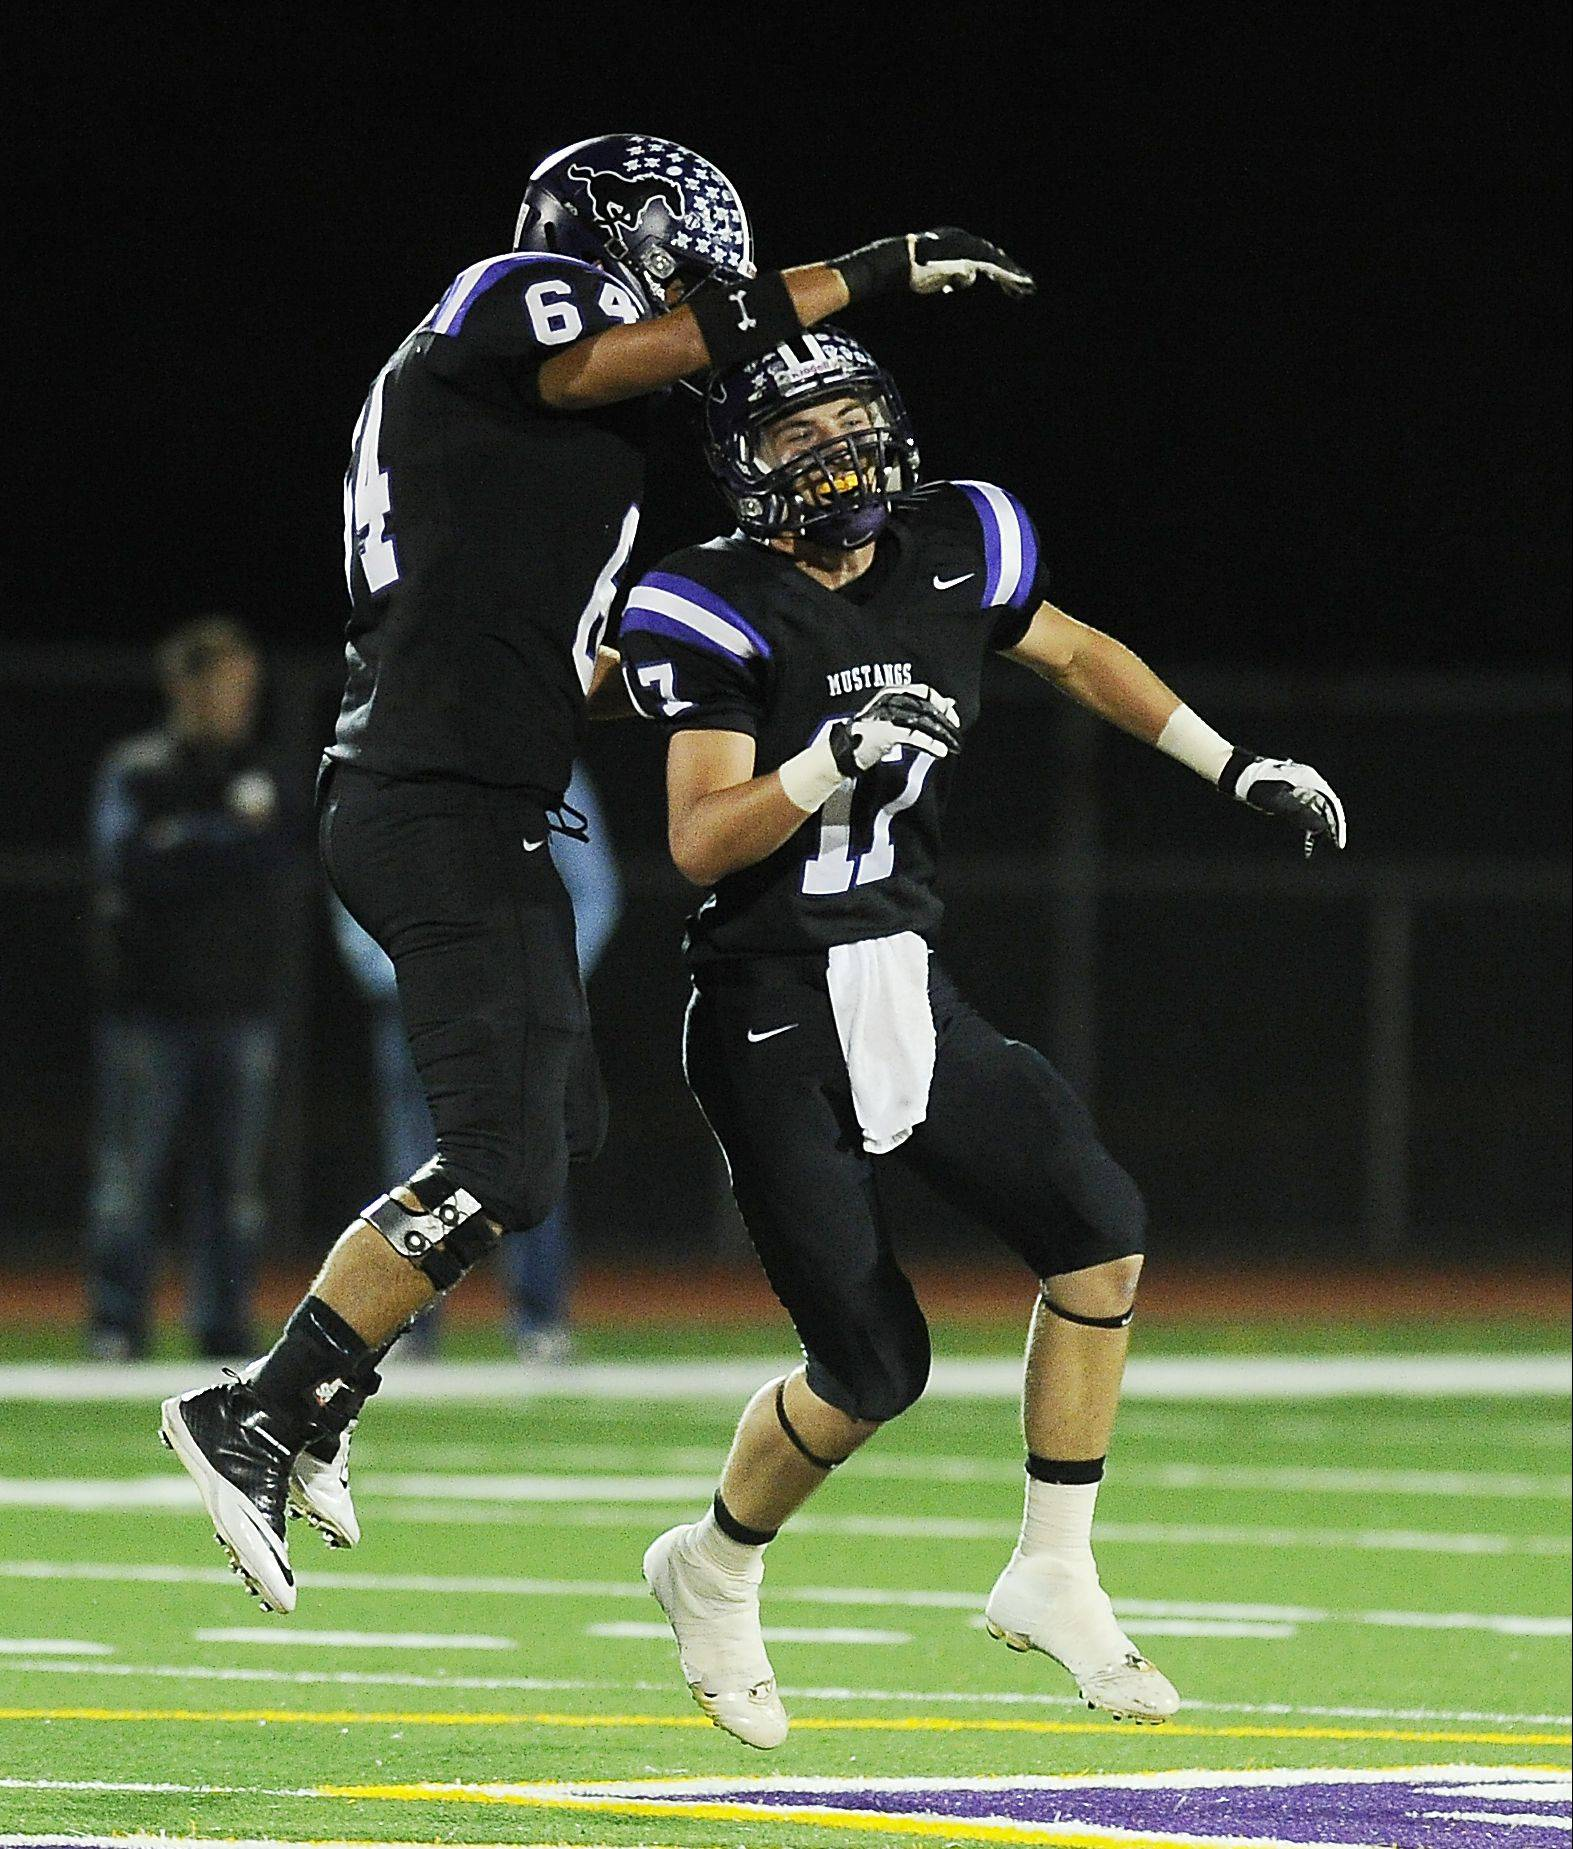 Rolling Meadows' Jacob Grant celebrates a sack with teammate Raul Alba-Cortez against Prospect on Friday at Rolling Meadows.